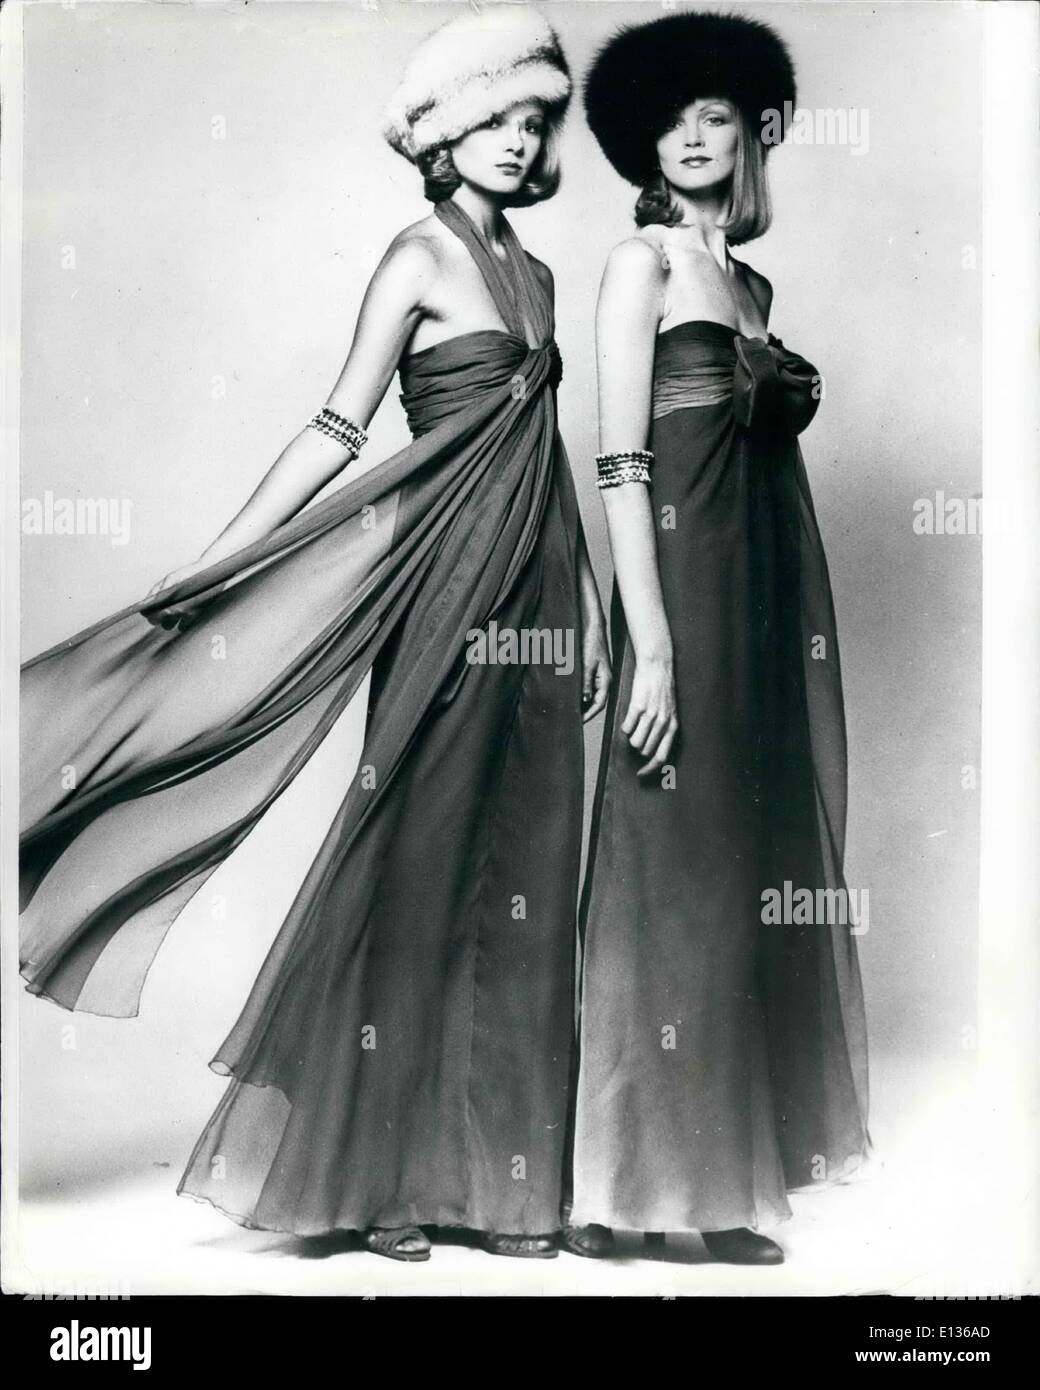 Feb. 28, 2012 - A Touch Of Royal Elegance: There was a touch of regal elegance about these two gowns, by french Couturier Jean-Louis Scherrer and shown in his Autumn/ Winter Collection. - Stock Image